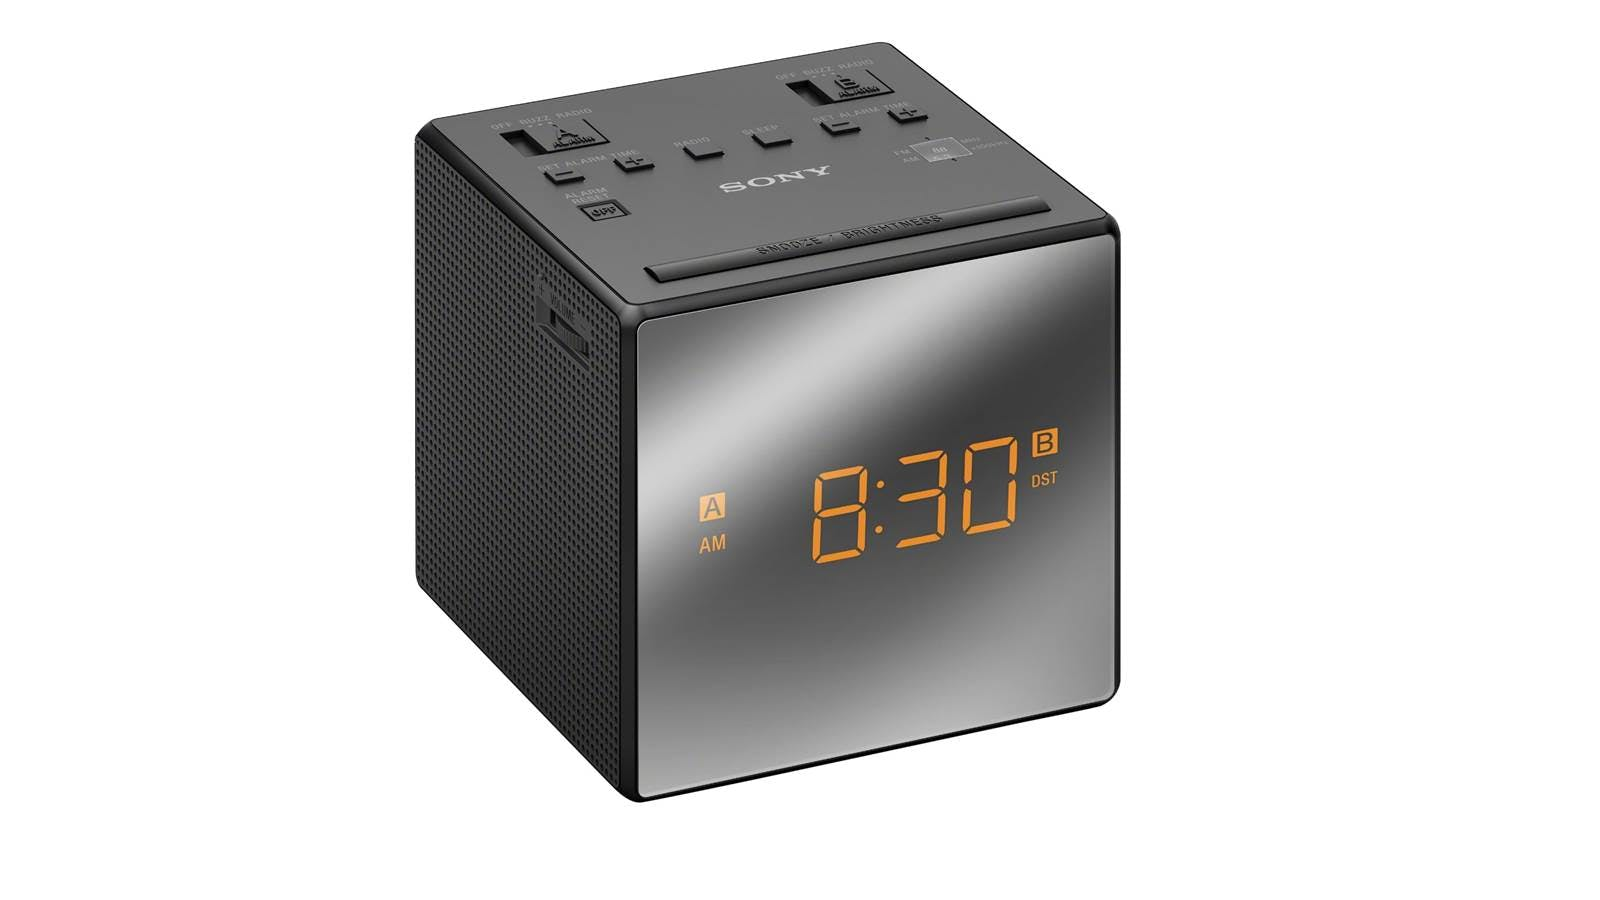 sony icfc1t alarm clock radio black harvey norman malaysia. Black Bedroom Furniture Sets. Home Design Ideas